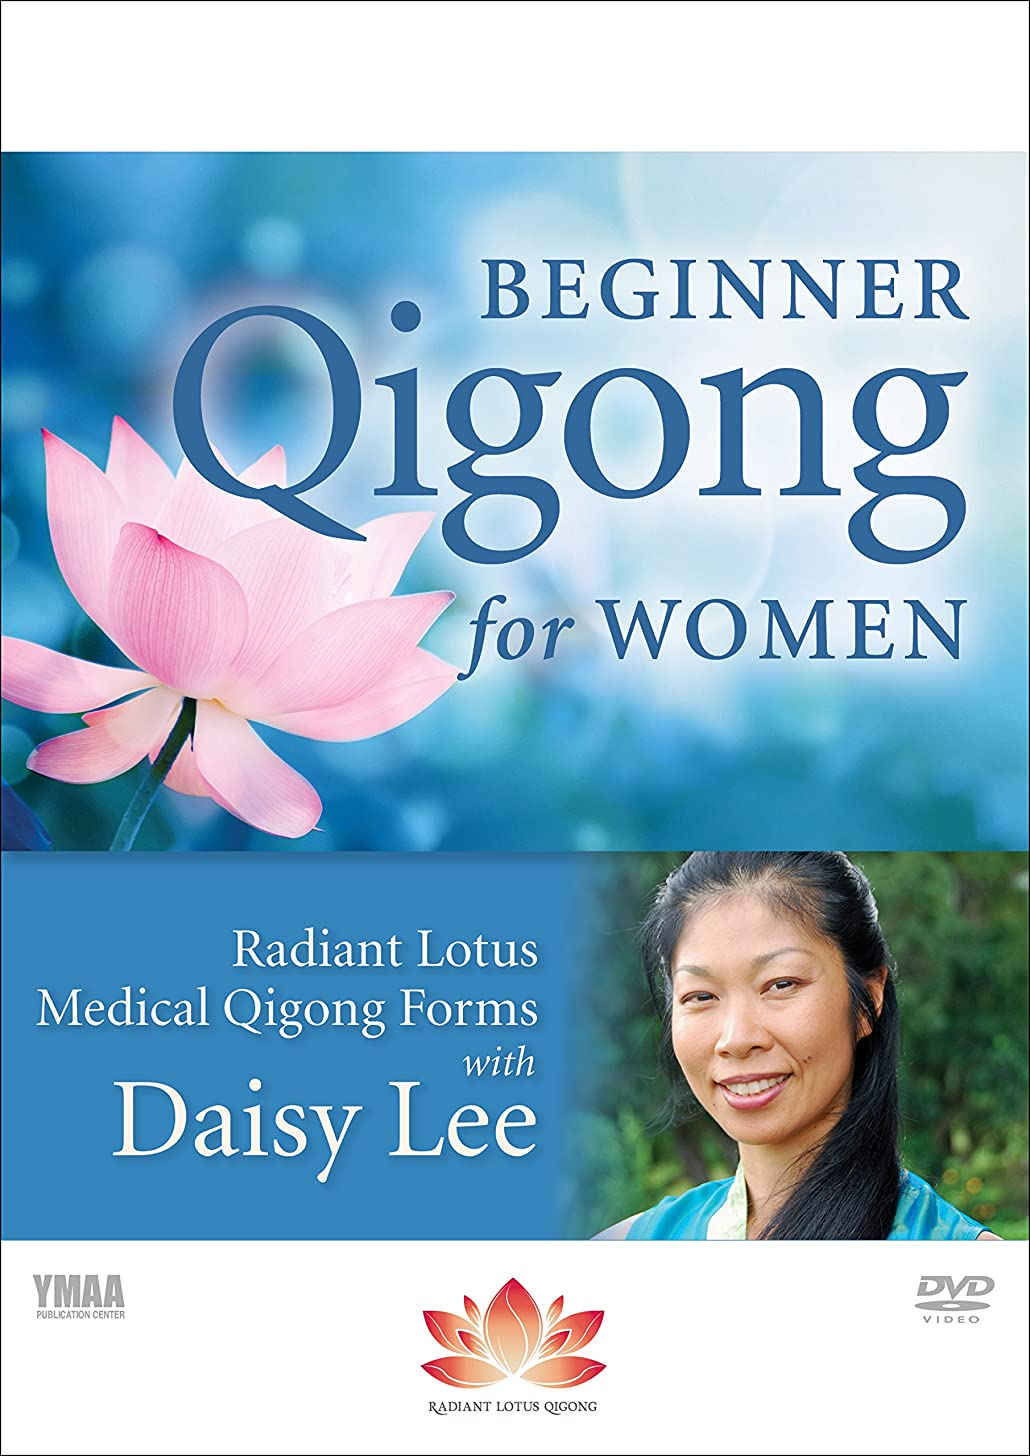 Beginner Qigong for Women DVD2: Radiant Lotus Medical Qigong Forms with Daisy Lee (YMAA DVD2) **NEW BESTSELLER**